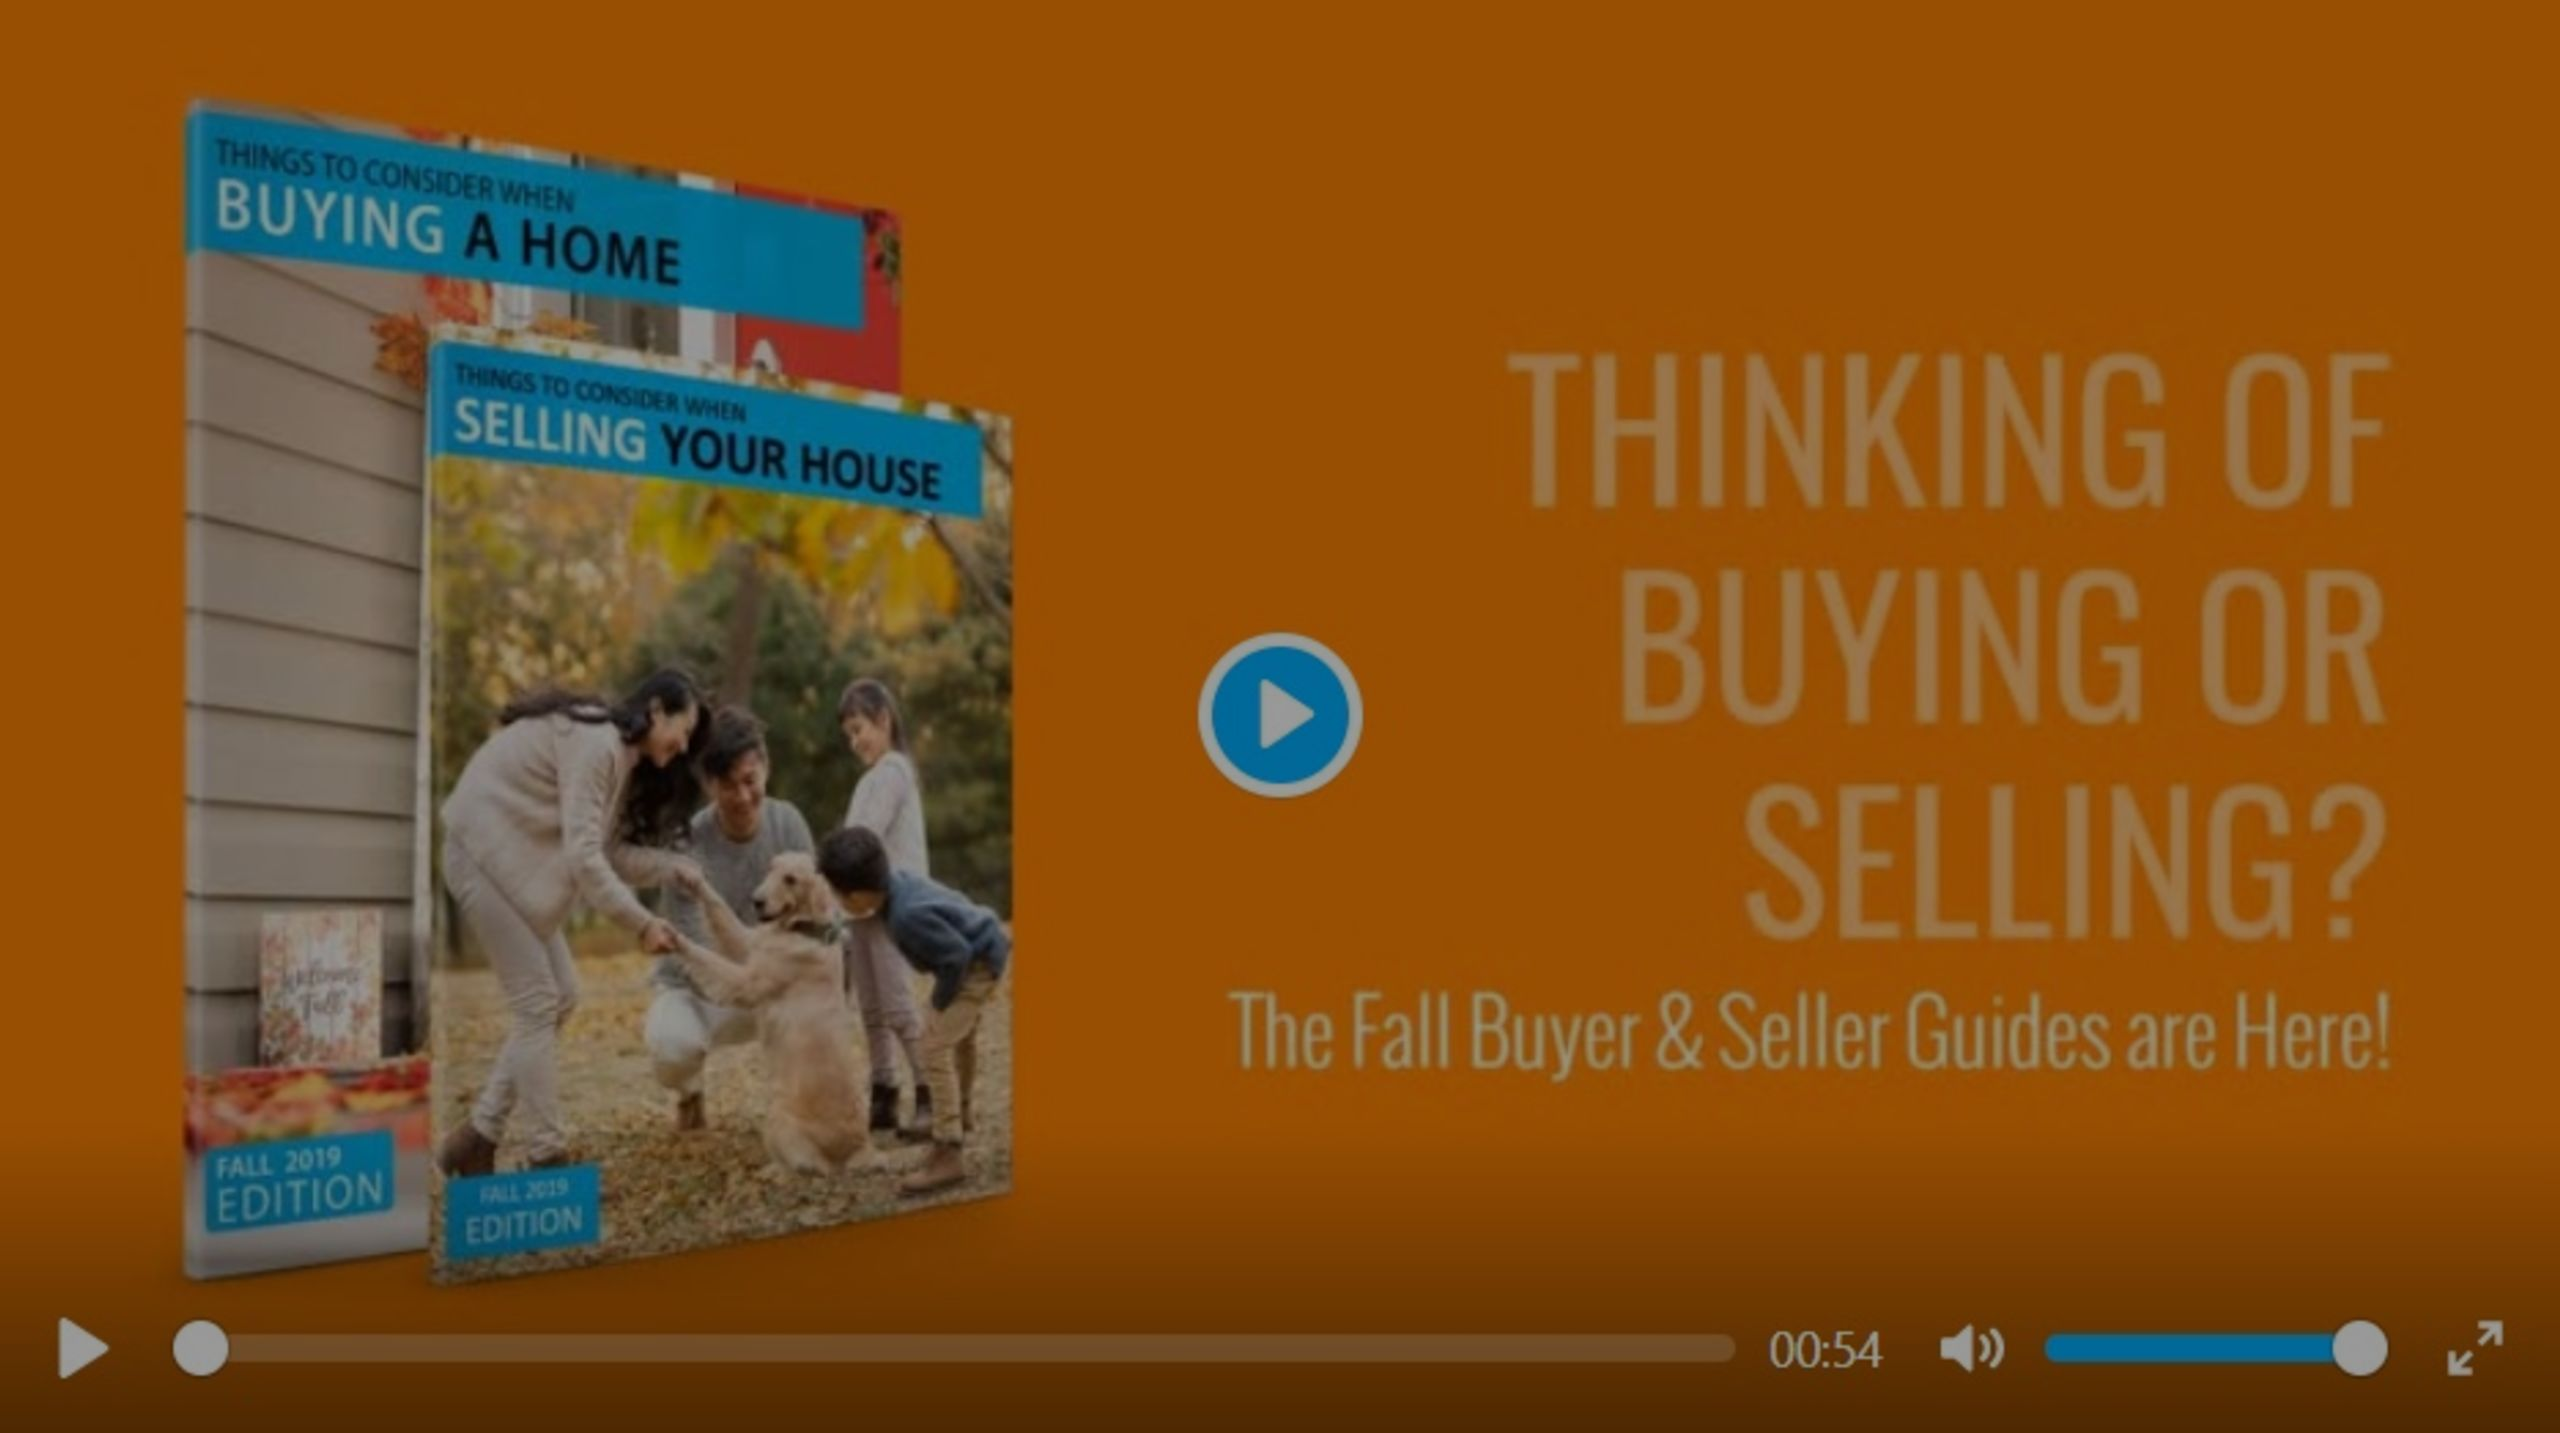 Thinking of Buying or Selling? The Fall 2019 Buyer & Seller Guides are Here!